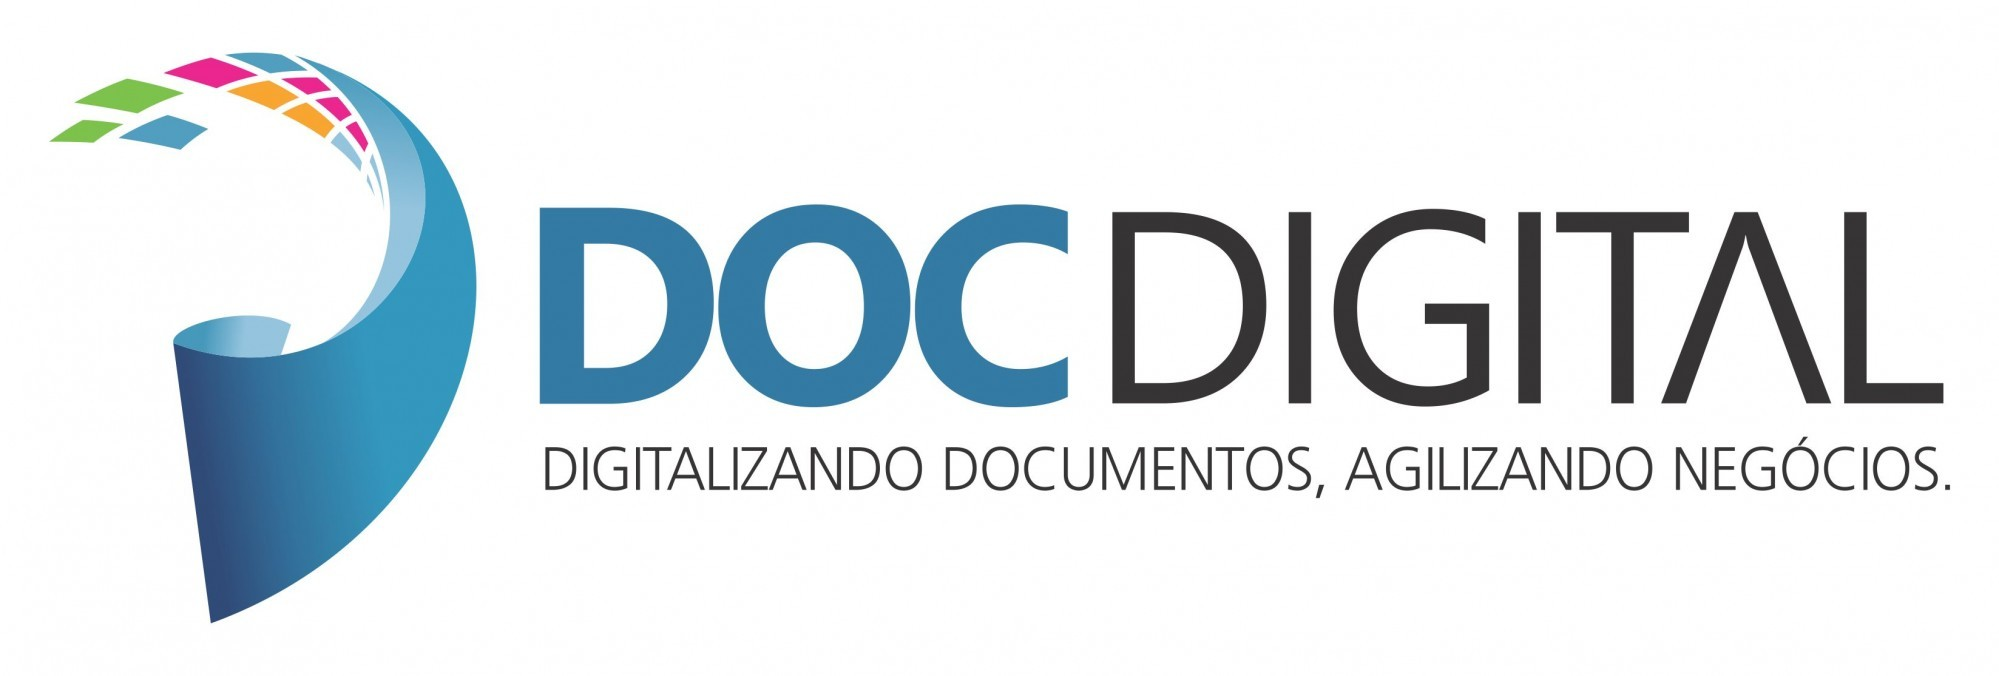 Digitalização de Documentos Docdigital